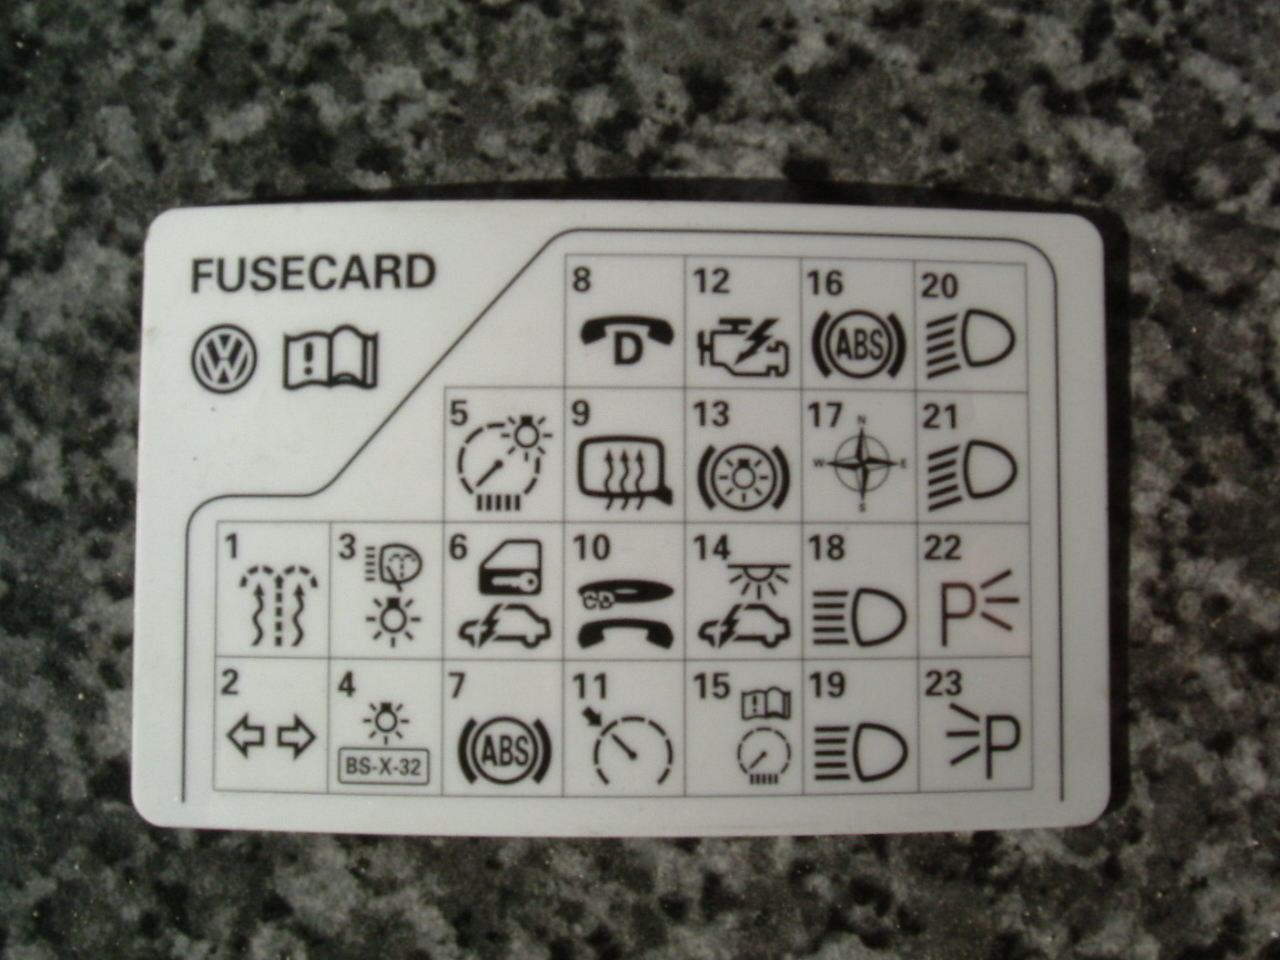 The fusecard lists the function and position for each fuse and contains  information on both sides. It is located on the inside of the fusebox cover.